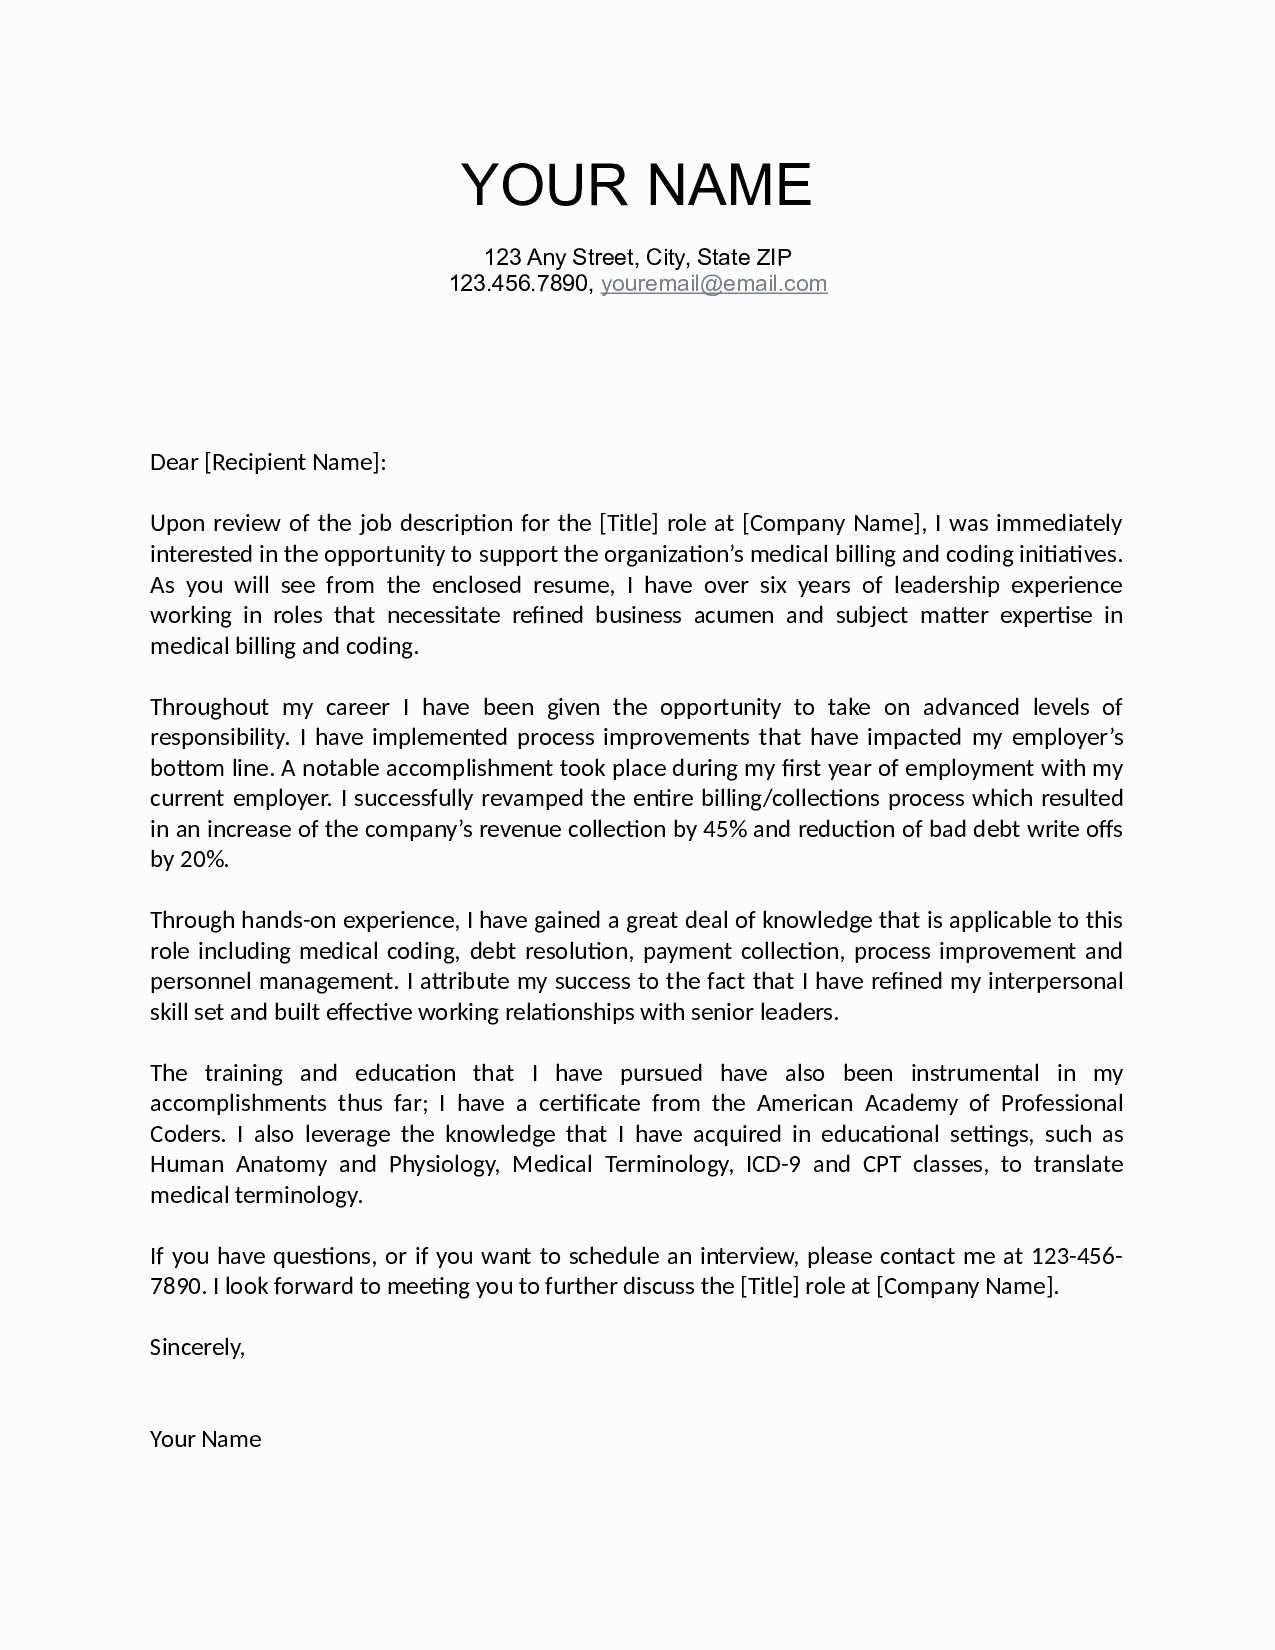 U Of T Cover Letter Template